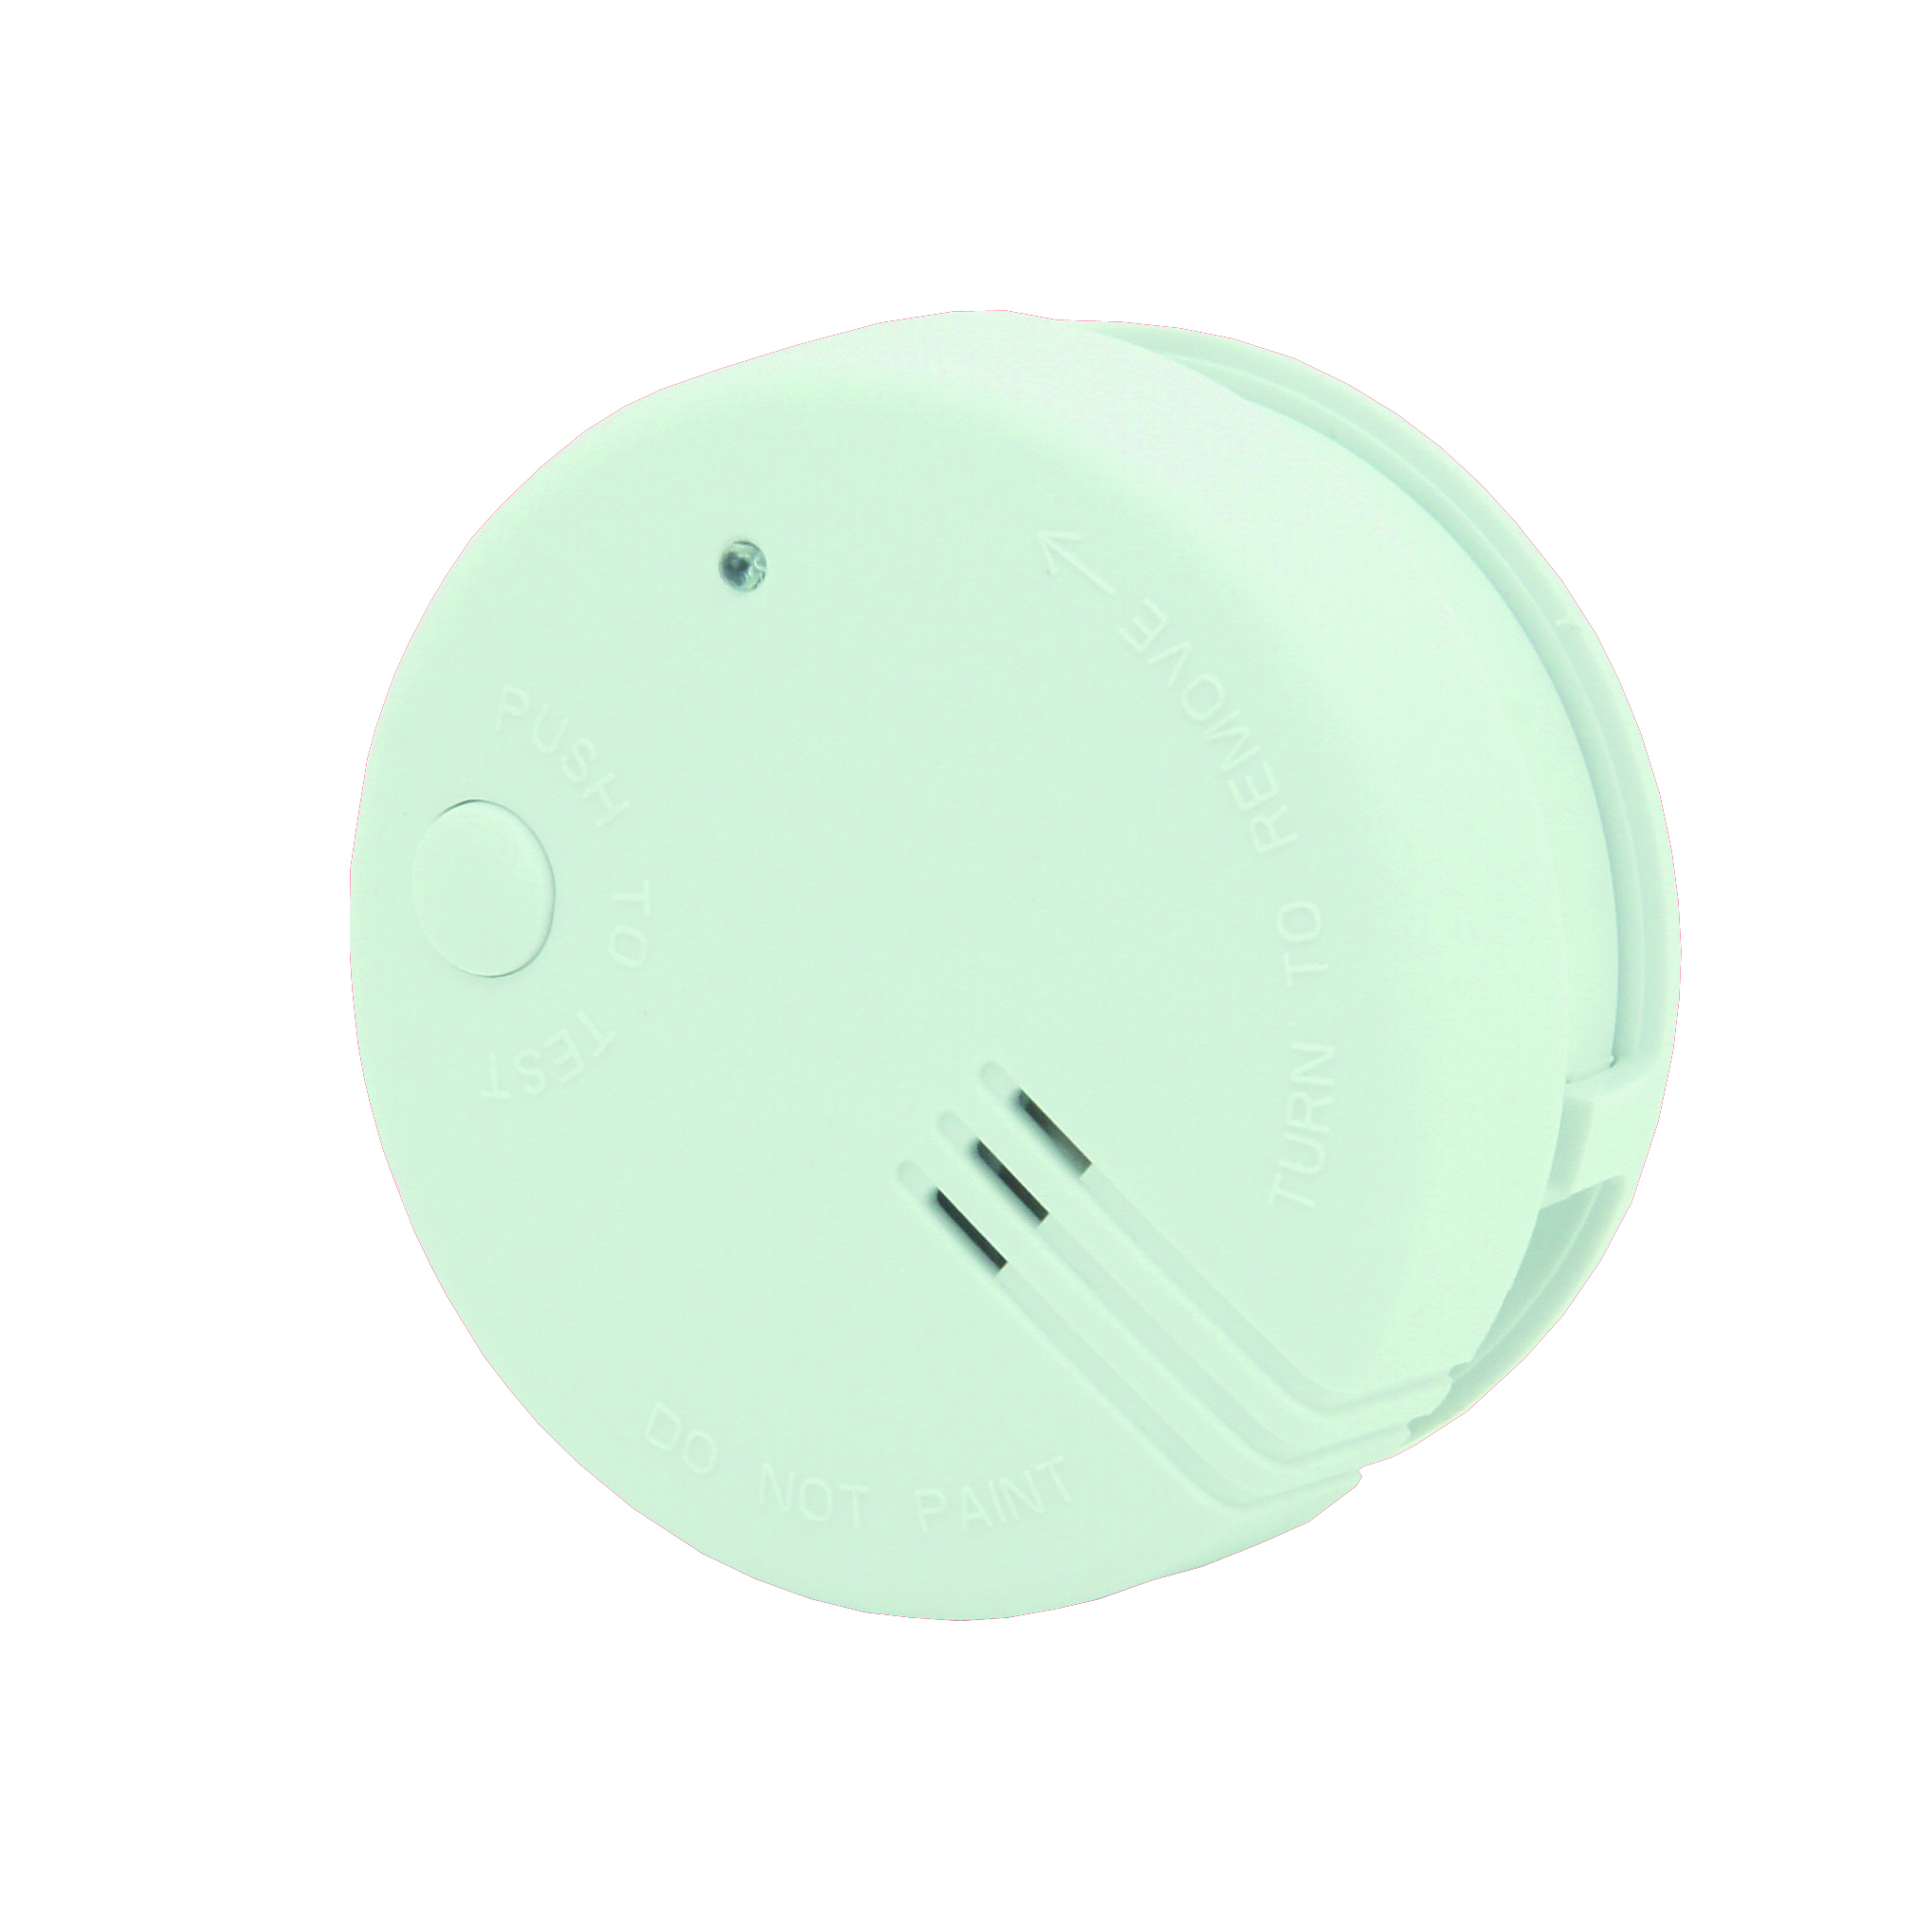 Smoke alarm MINI 5Y BAT 5Y